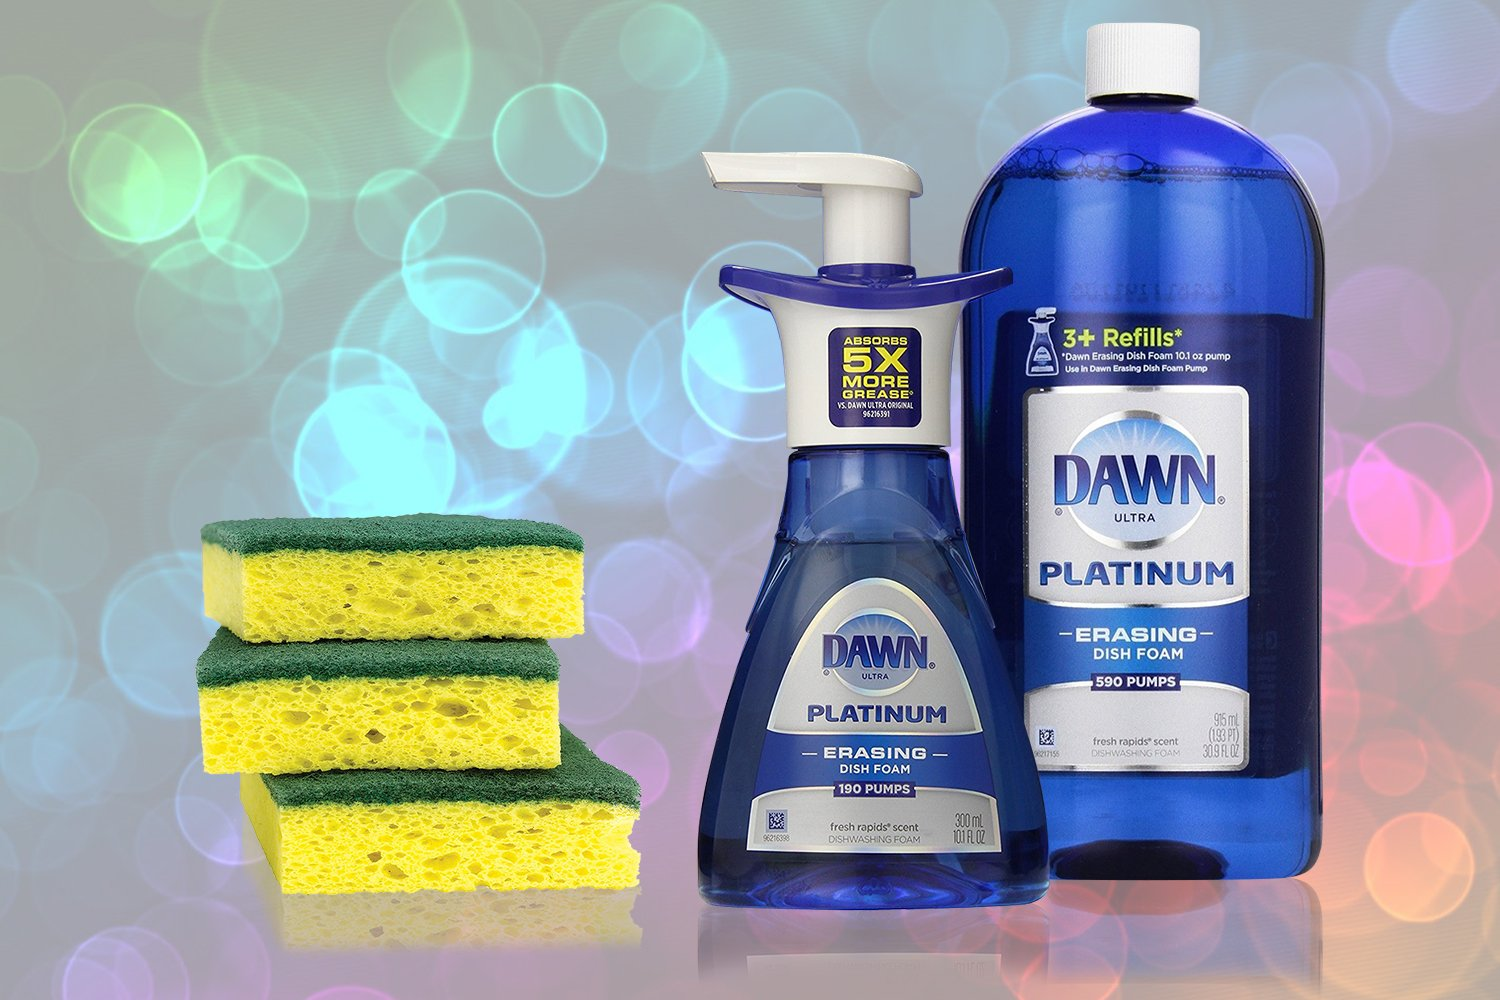 Dawn Platinum Erasing Dish Foam Bundle, 1 Refill and Pump With Scotch Brite Heavy Duty 3 Pack of Scrub Sponges, Fresh Rapids Scent, 30.9 Fluid Ounce